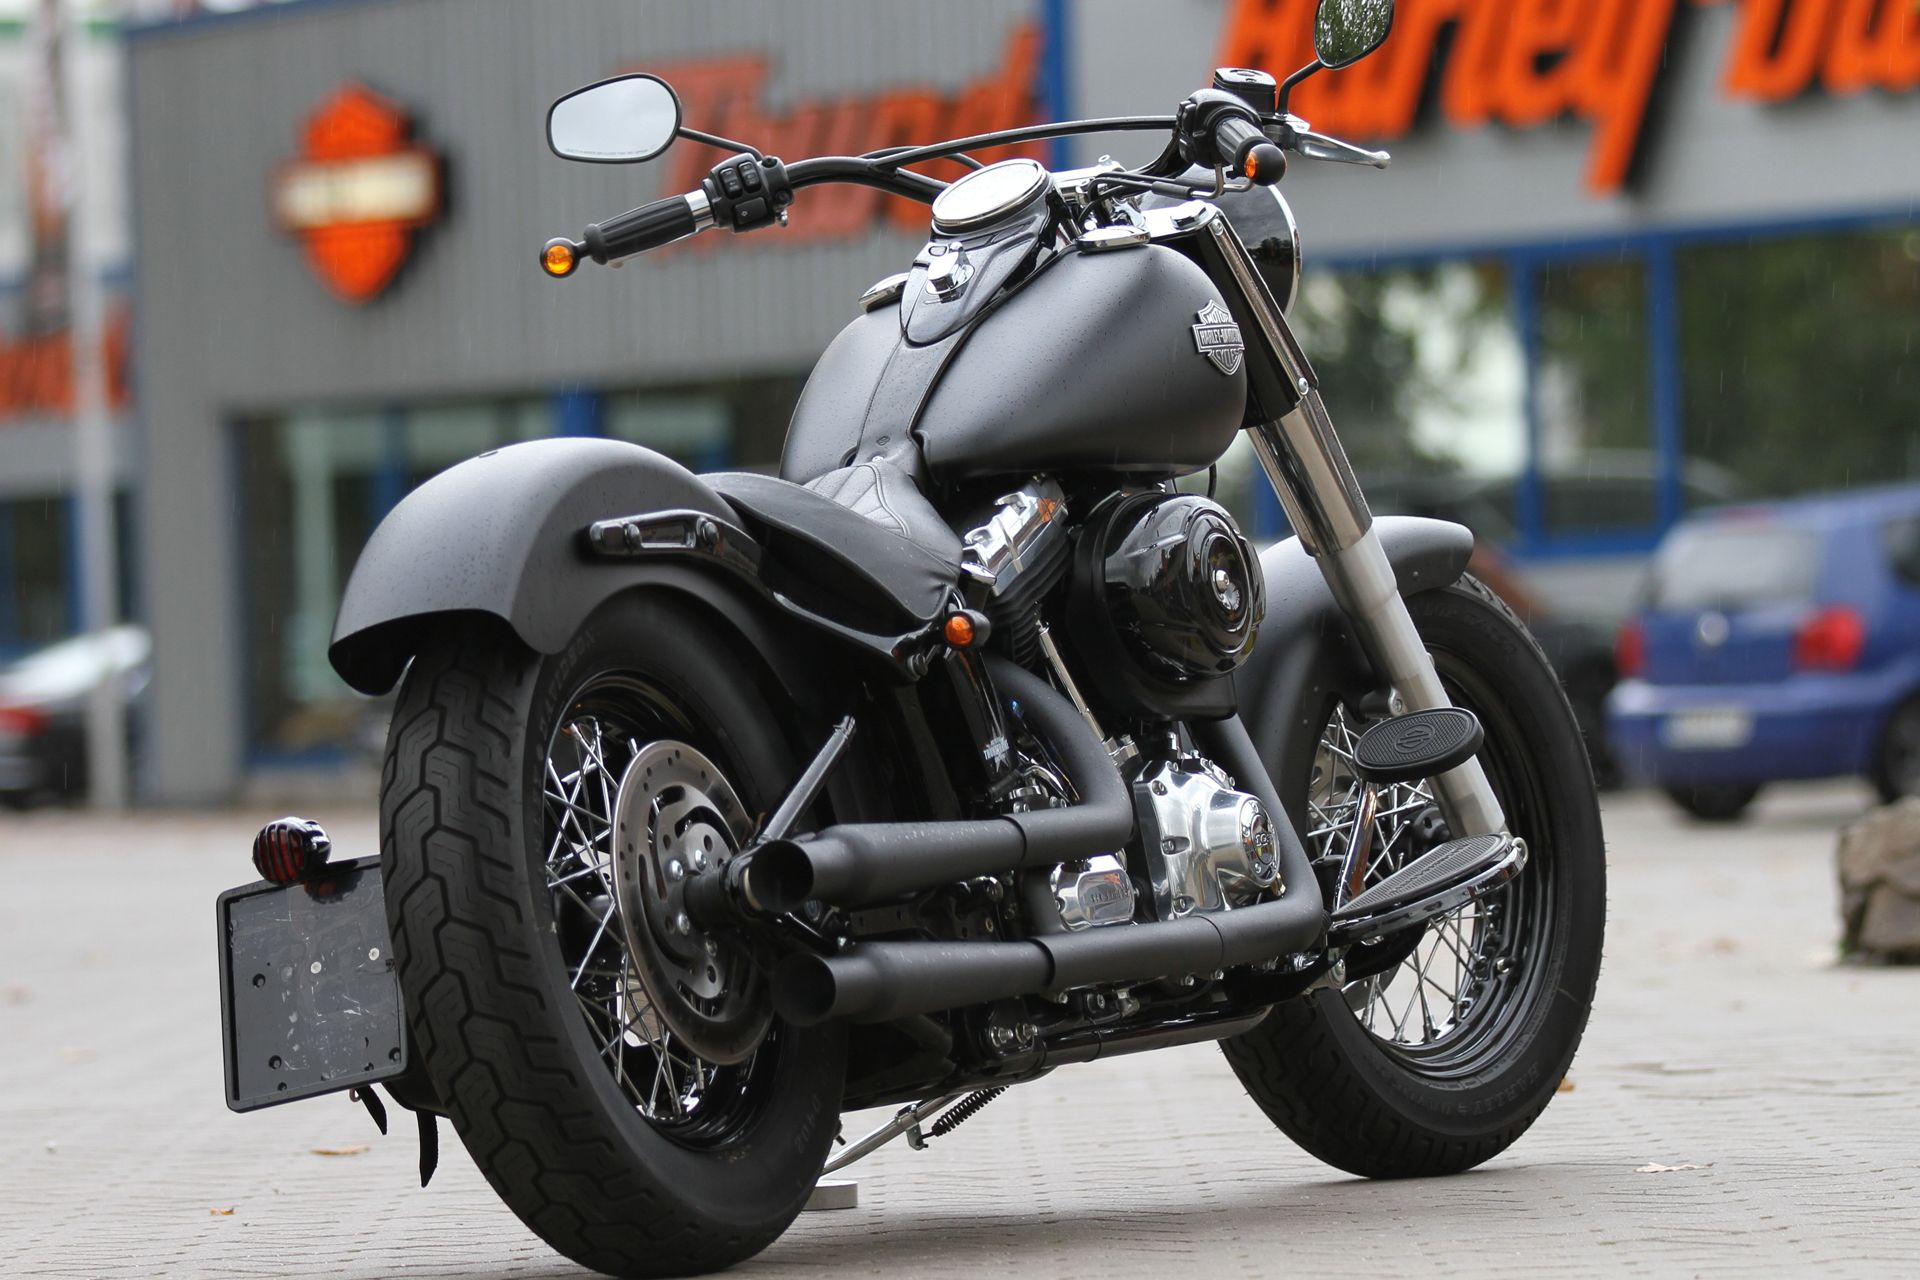 harley davidson softail slim harley davidson motorcycles pinterest harley davidson. Black Bedroom Furniture Sets. Home Design Ideas